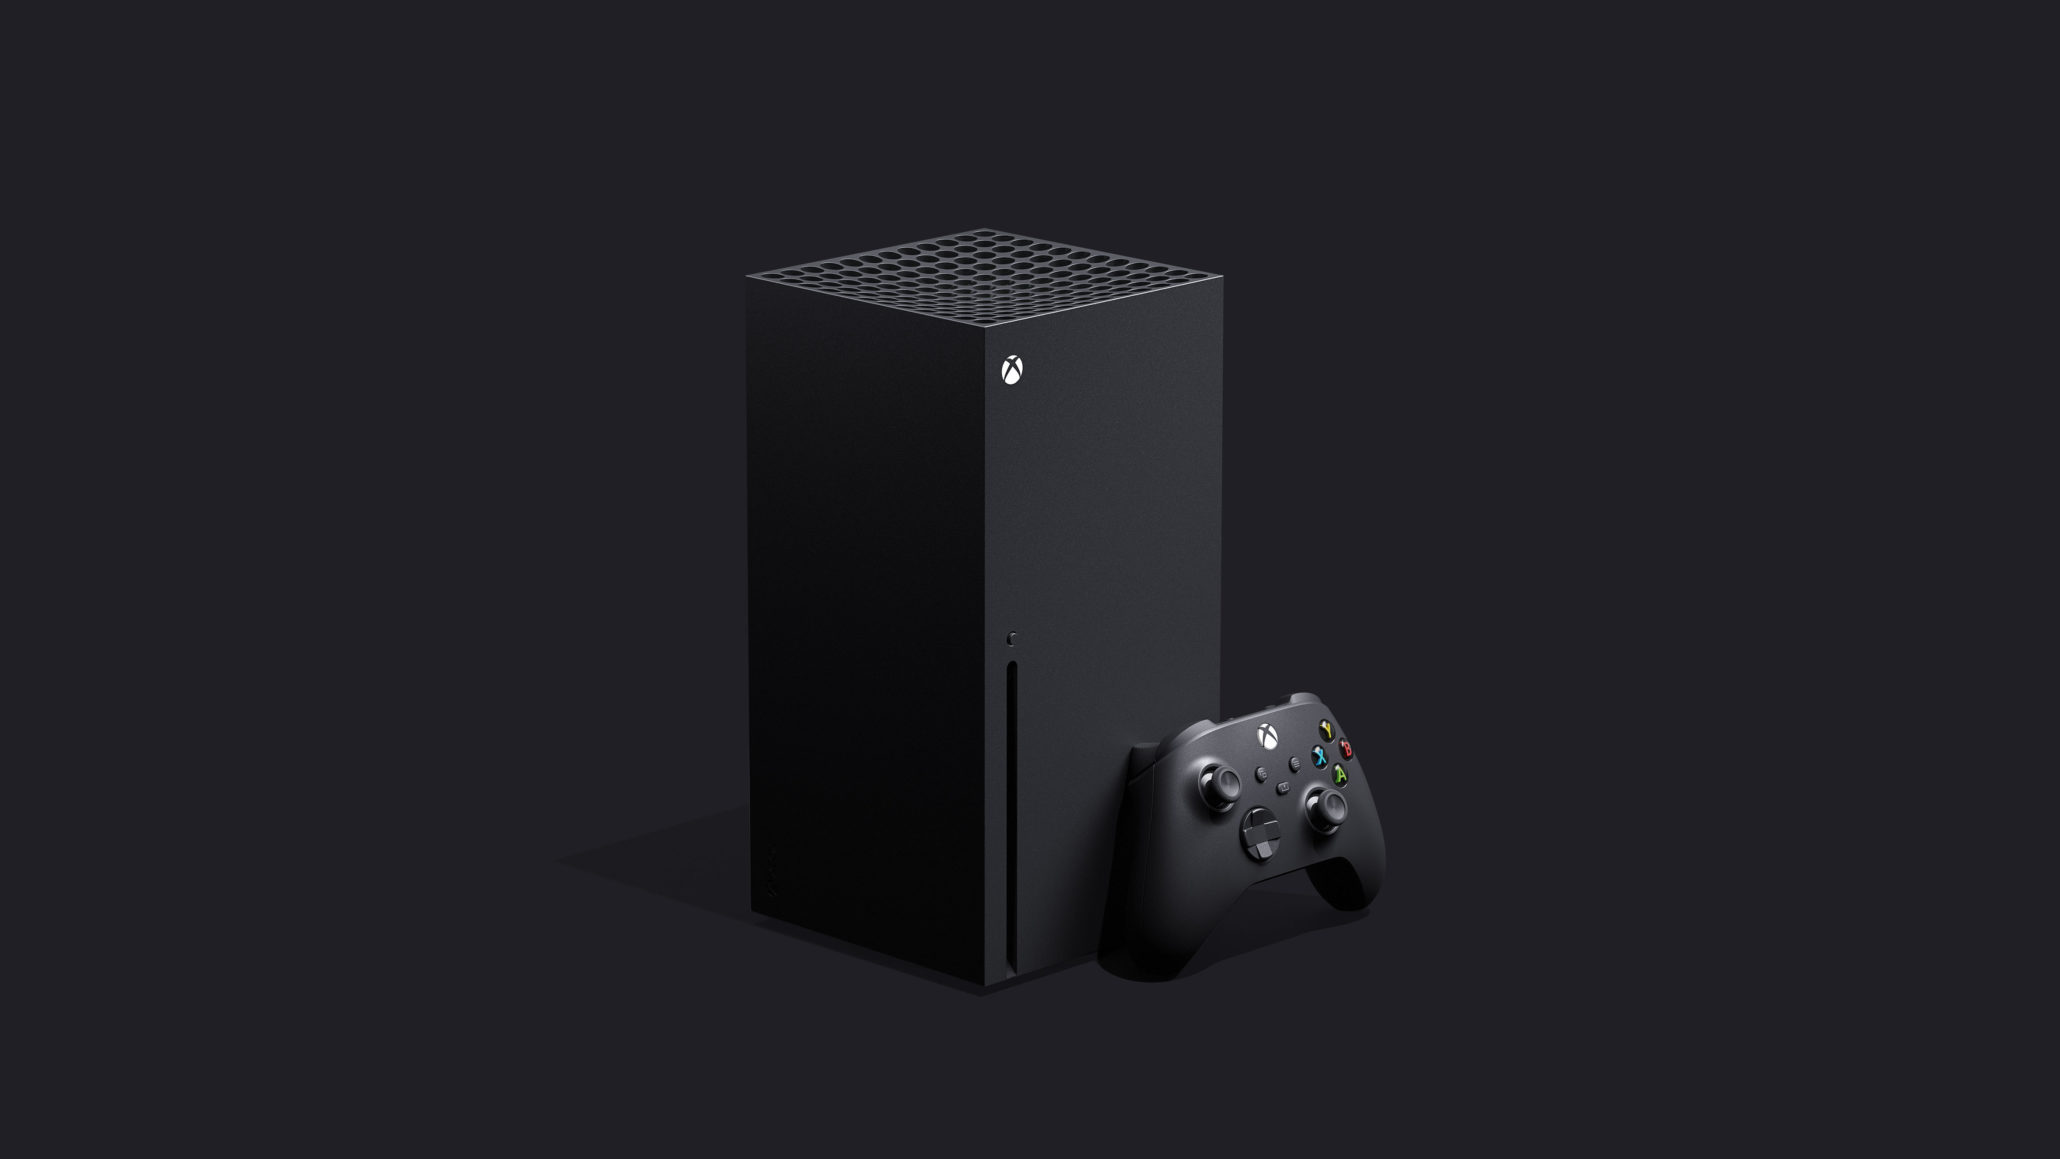 Xbox Series X games showcase confirmed for July 23